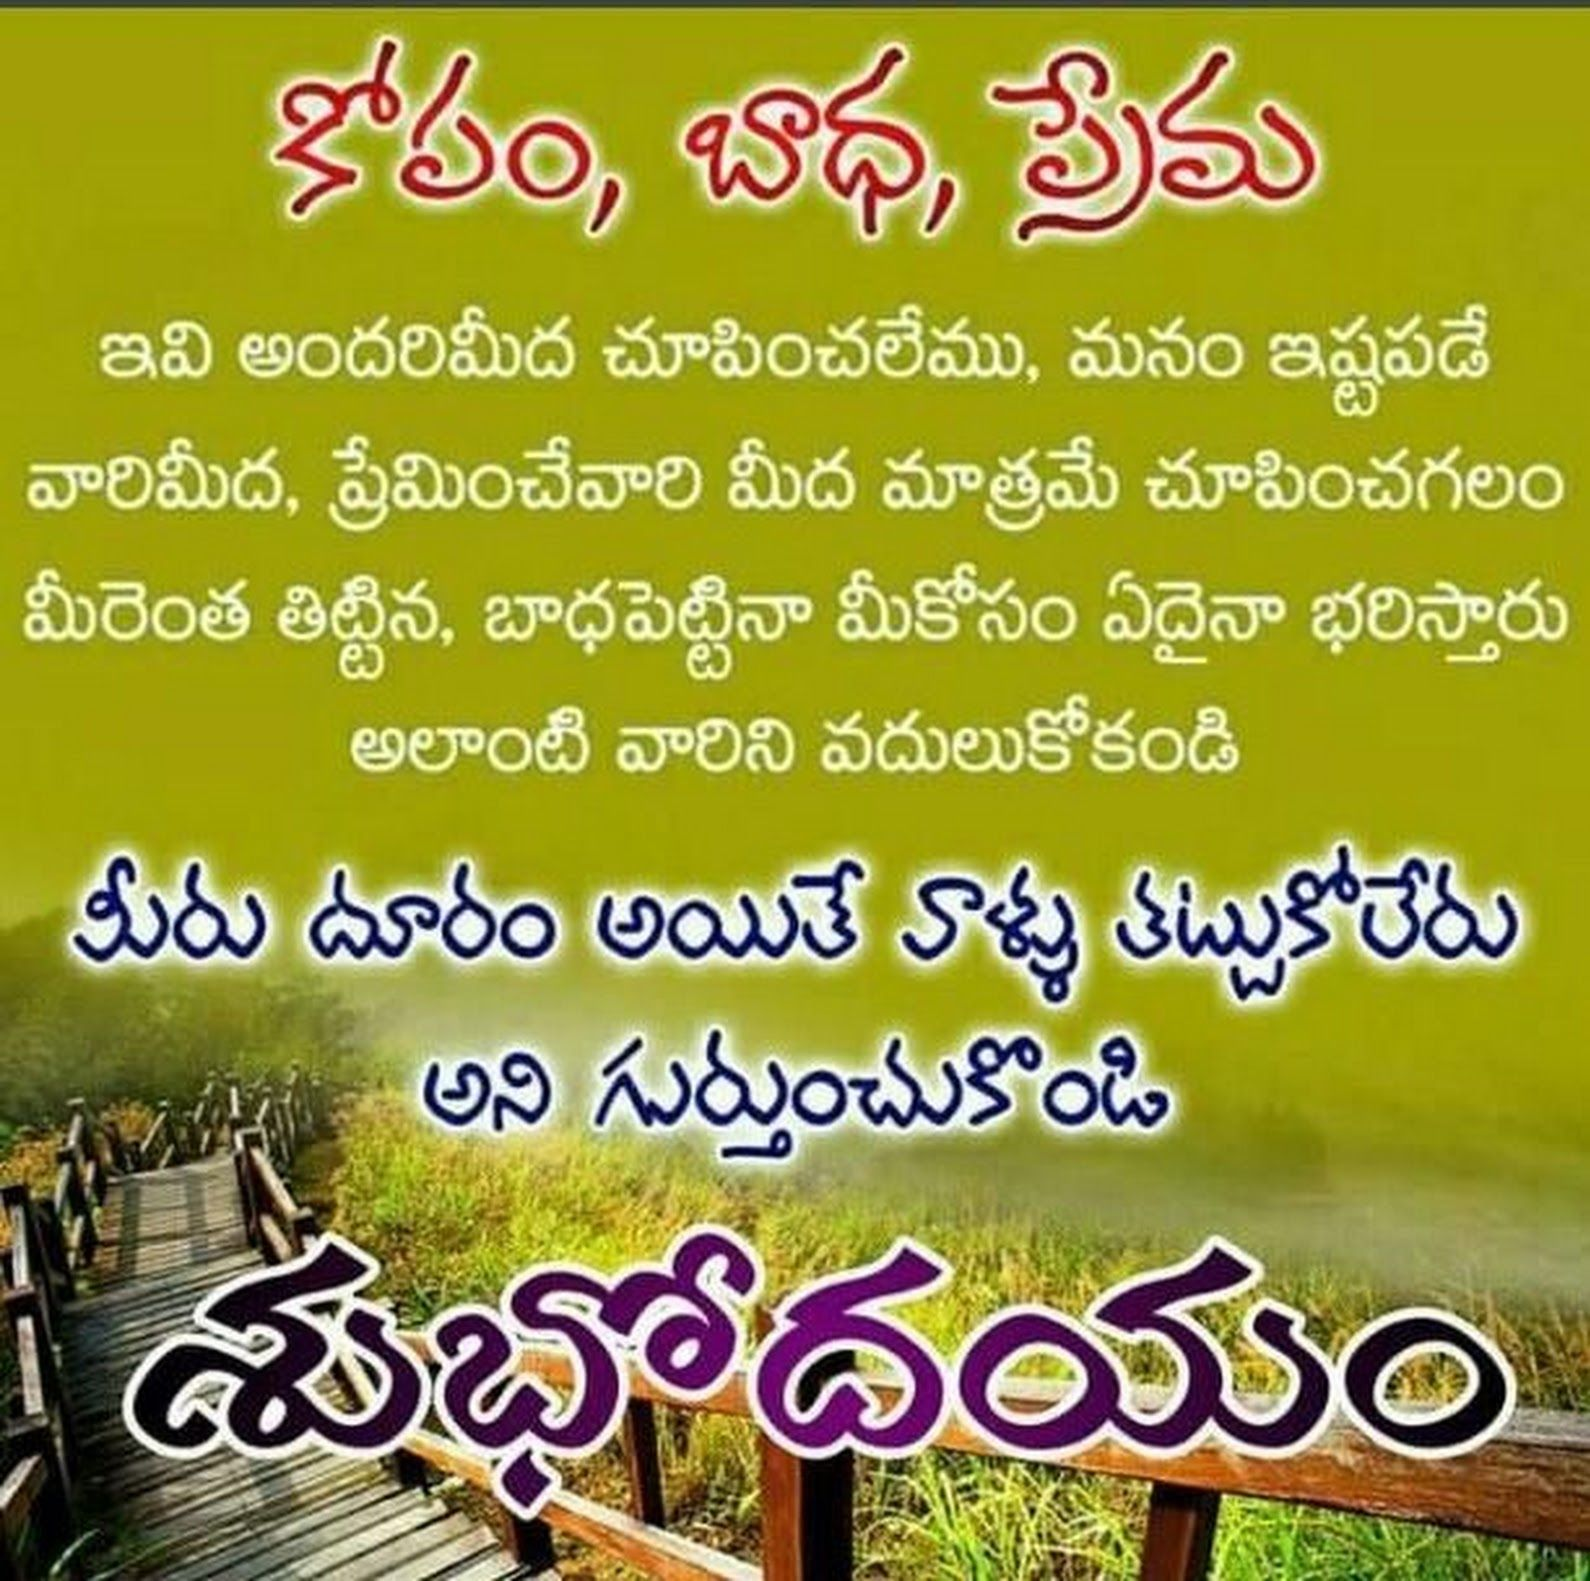 Pin By 9491622709 On Telugu Funny Good Morning Quotes Telugu Inspirational Quotes Morning Quotes For Him